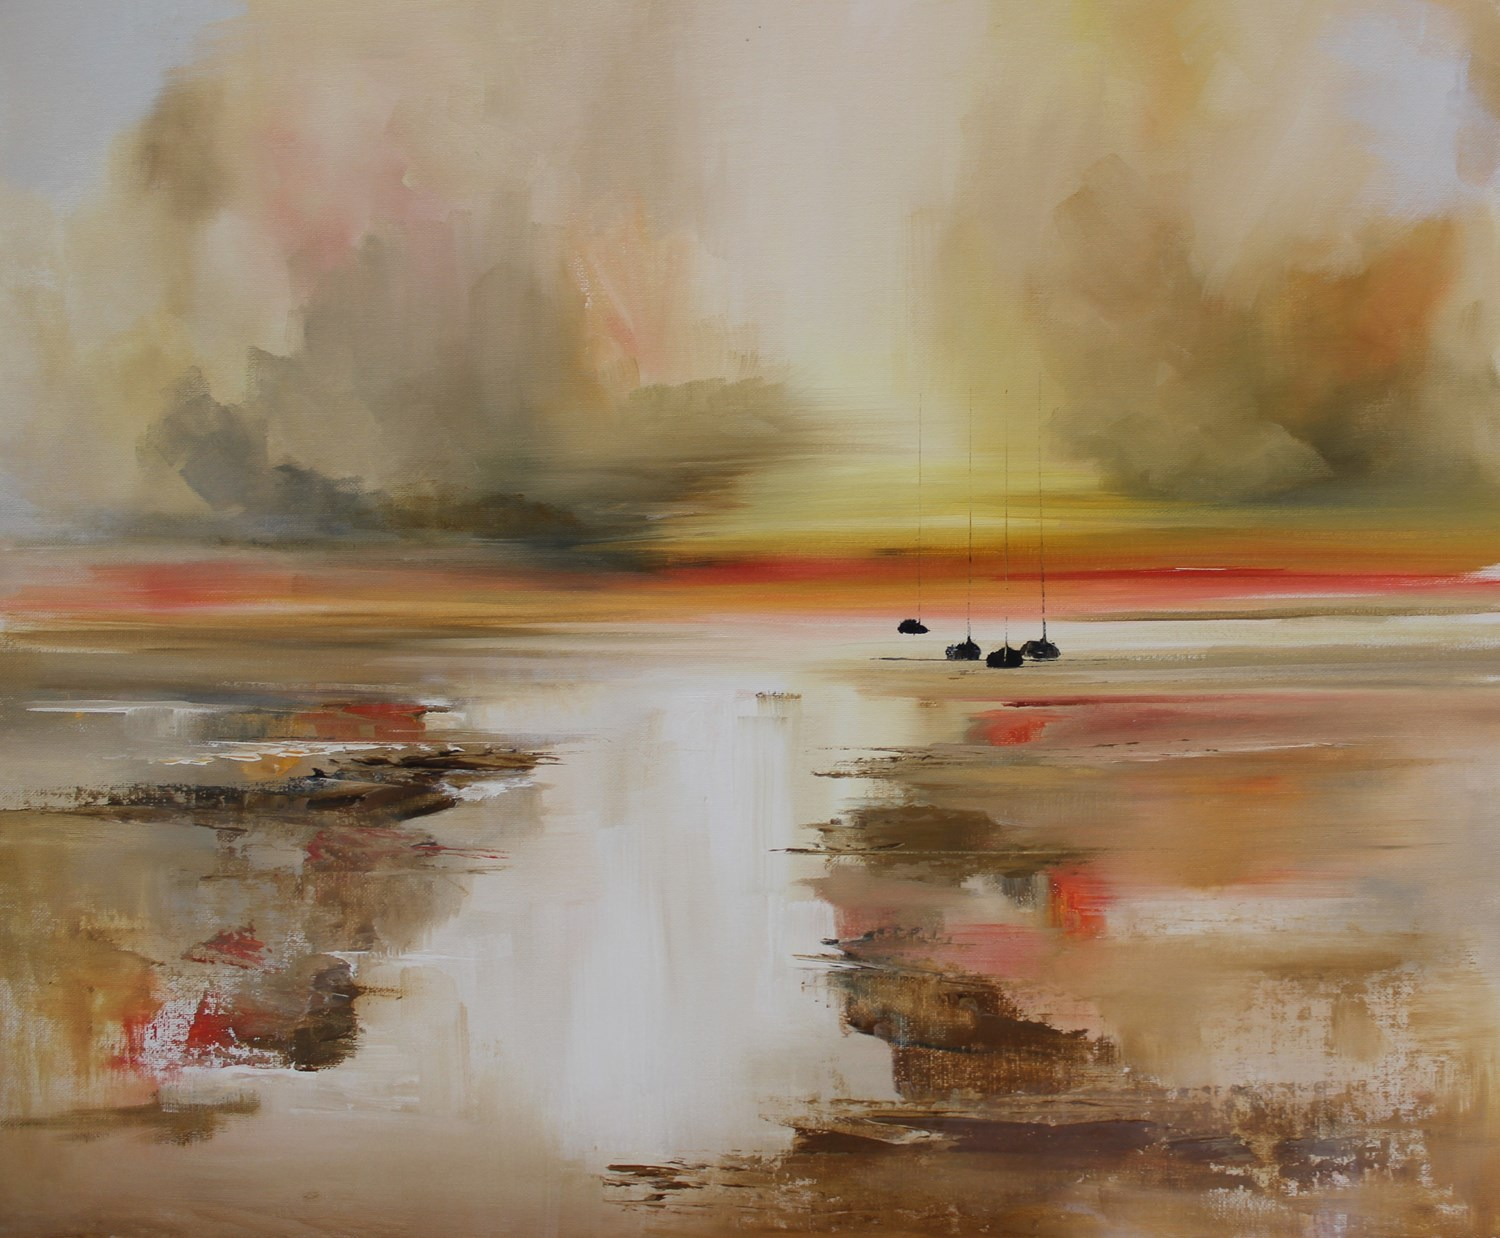 'Sun dipping on the horizon ' by artist Rosanne Barr